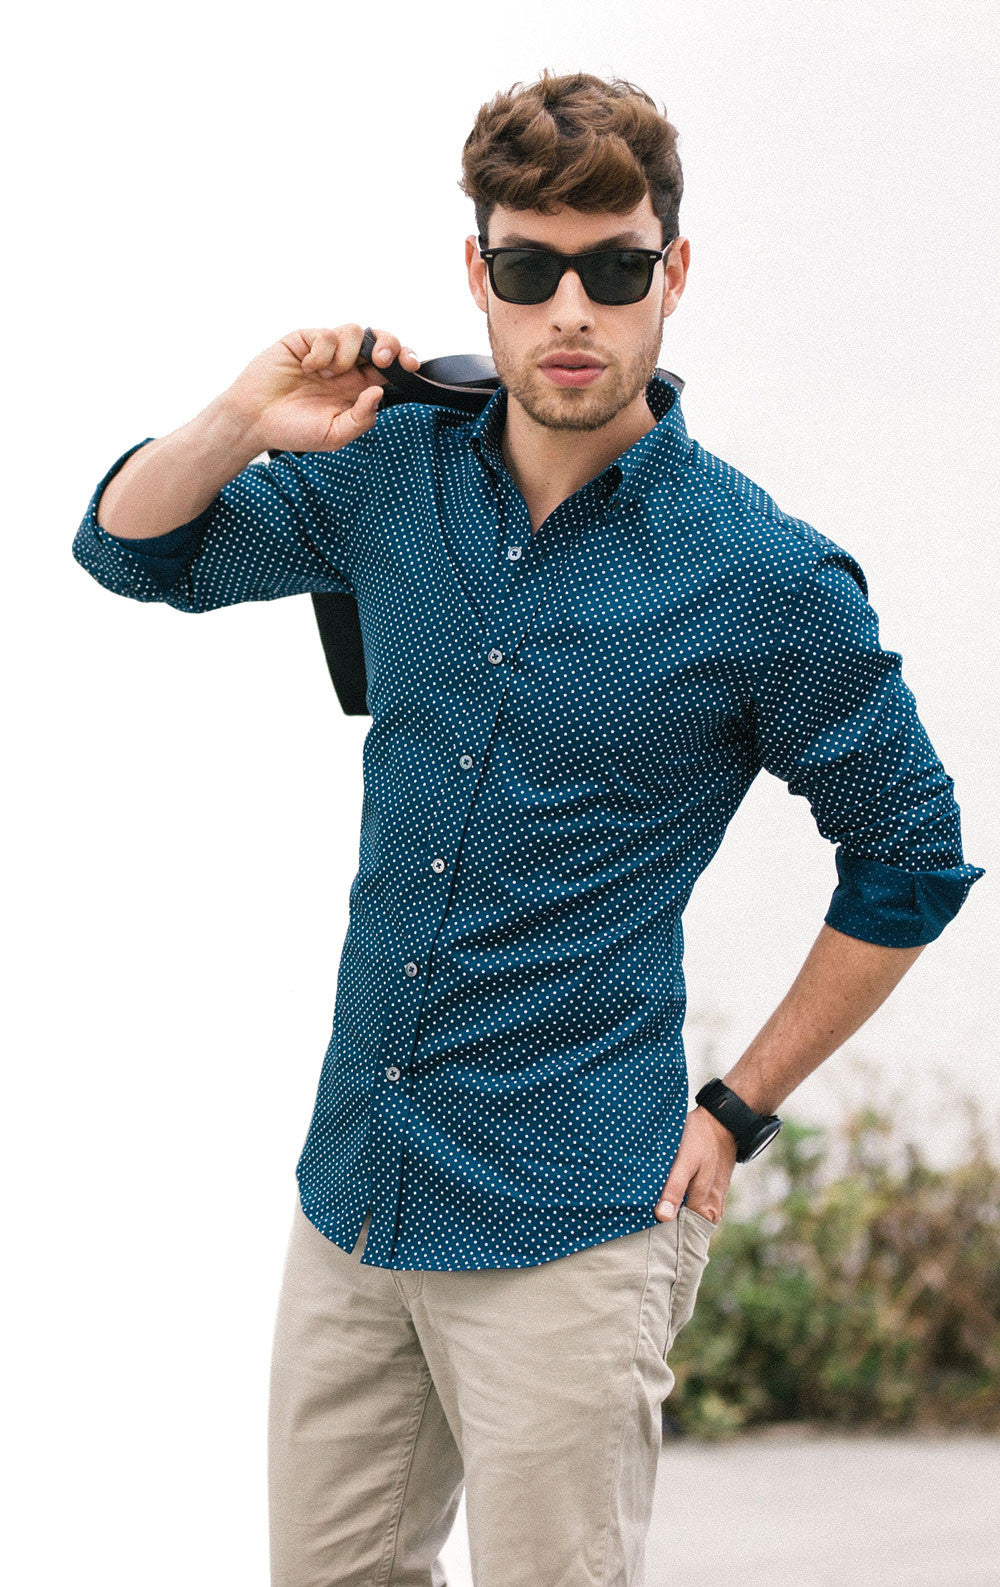 9db17af715 Men s Outfit Guide  The fundamentals of great casual outfits